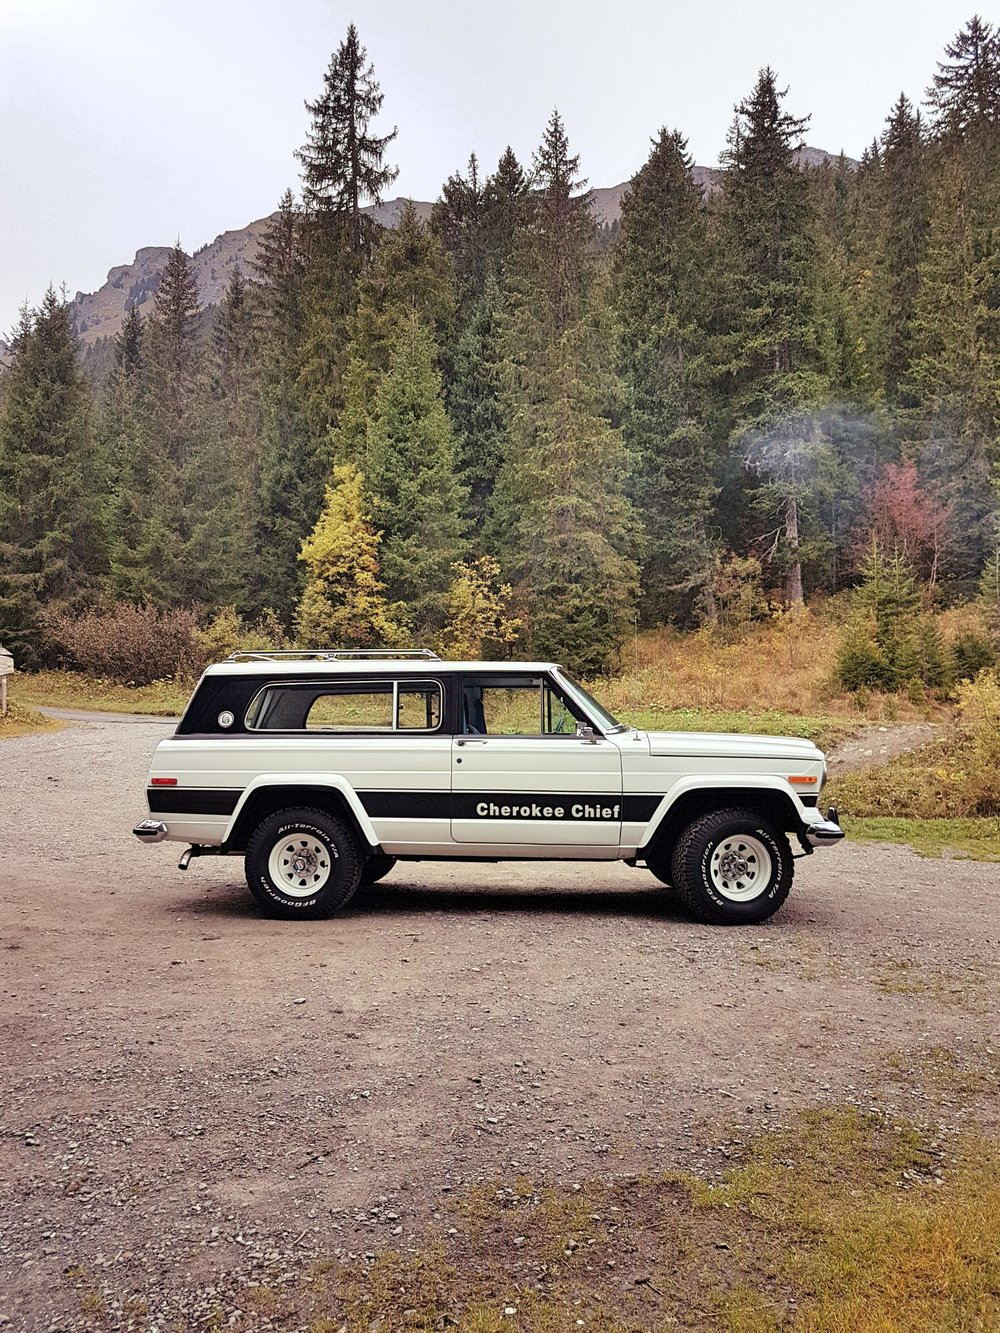 jeep-cherokee-chief-1978-shooting-morgins-switzerland-16.jpg